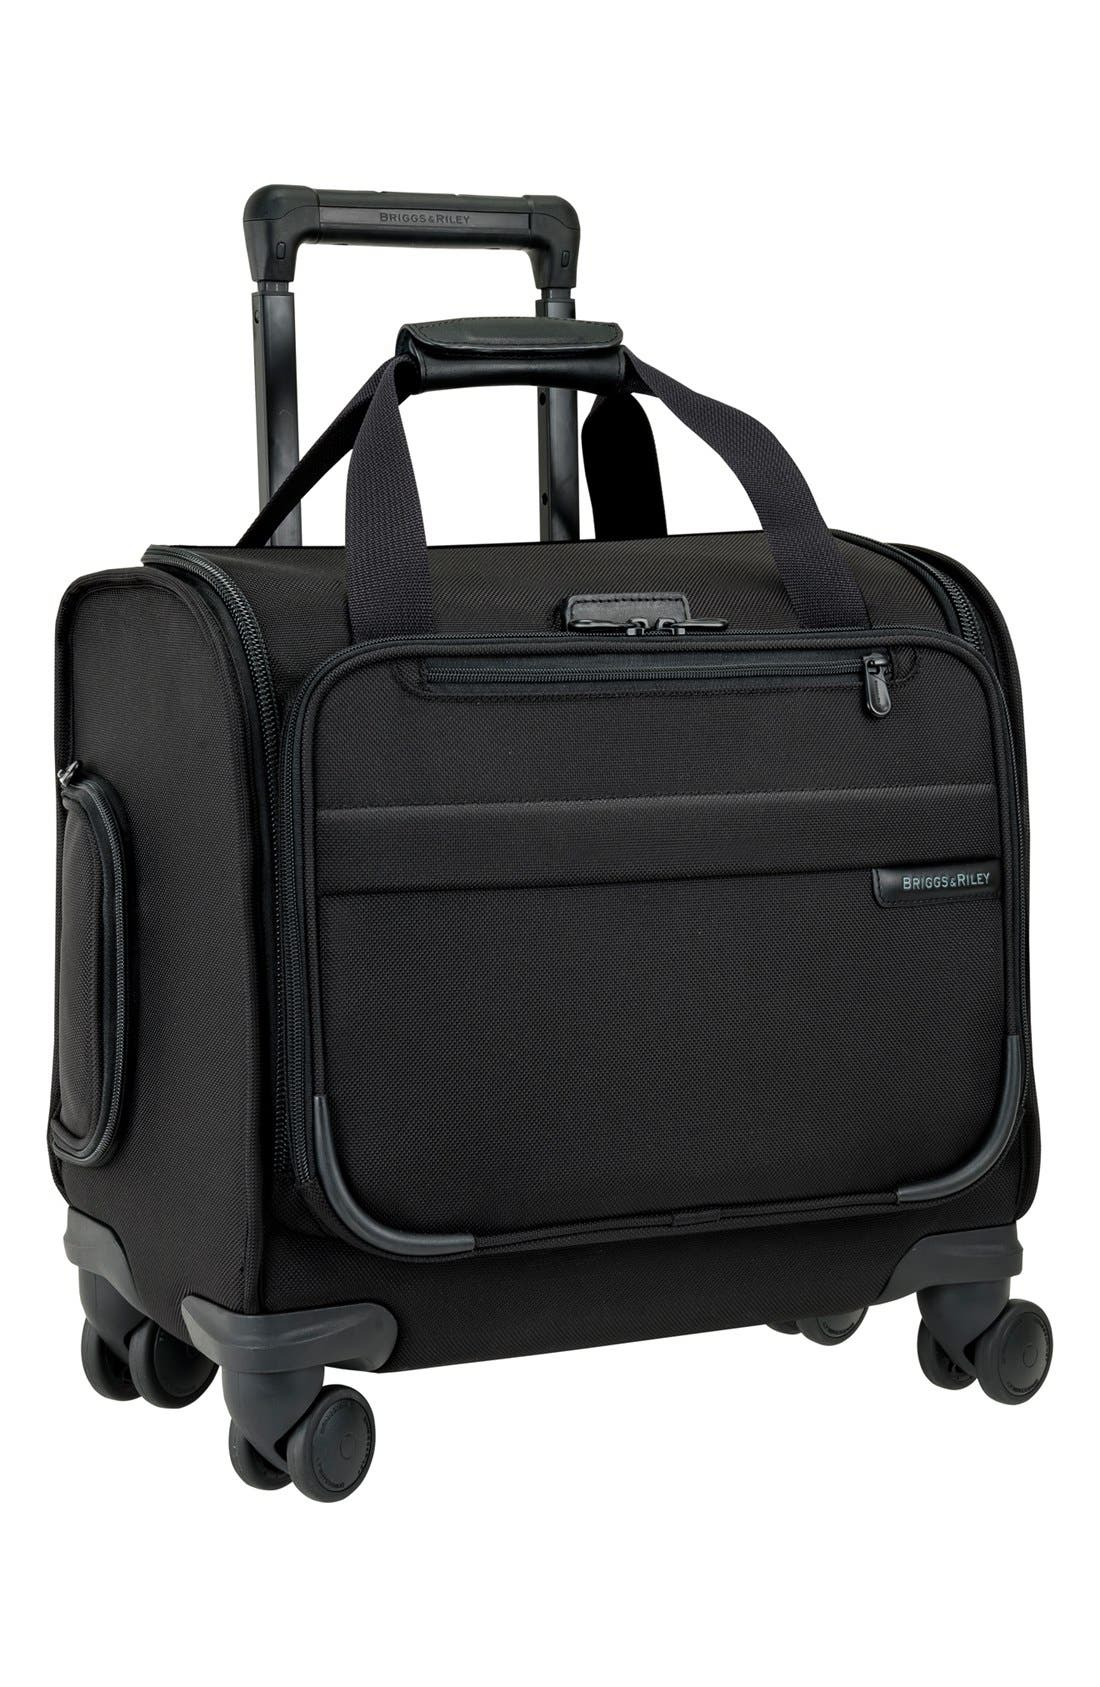 BRIGGS & RILEY 'Cabin' Spinner Carry-On